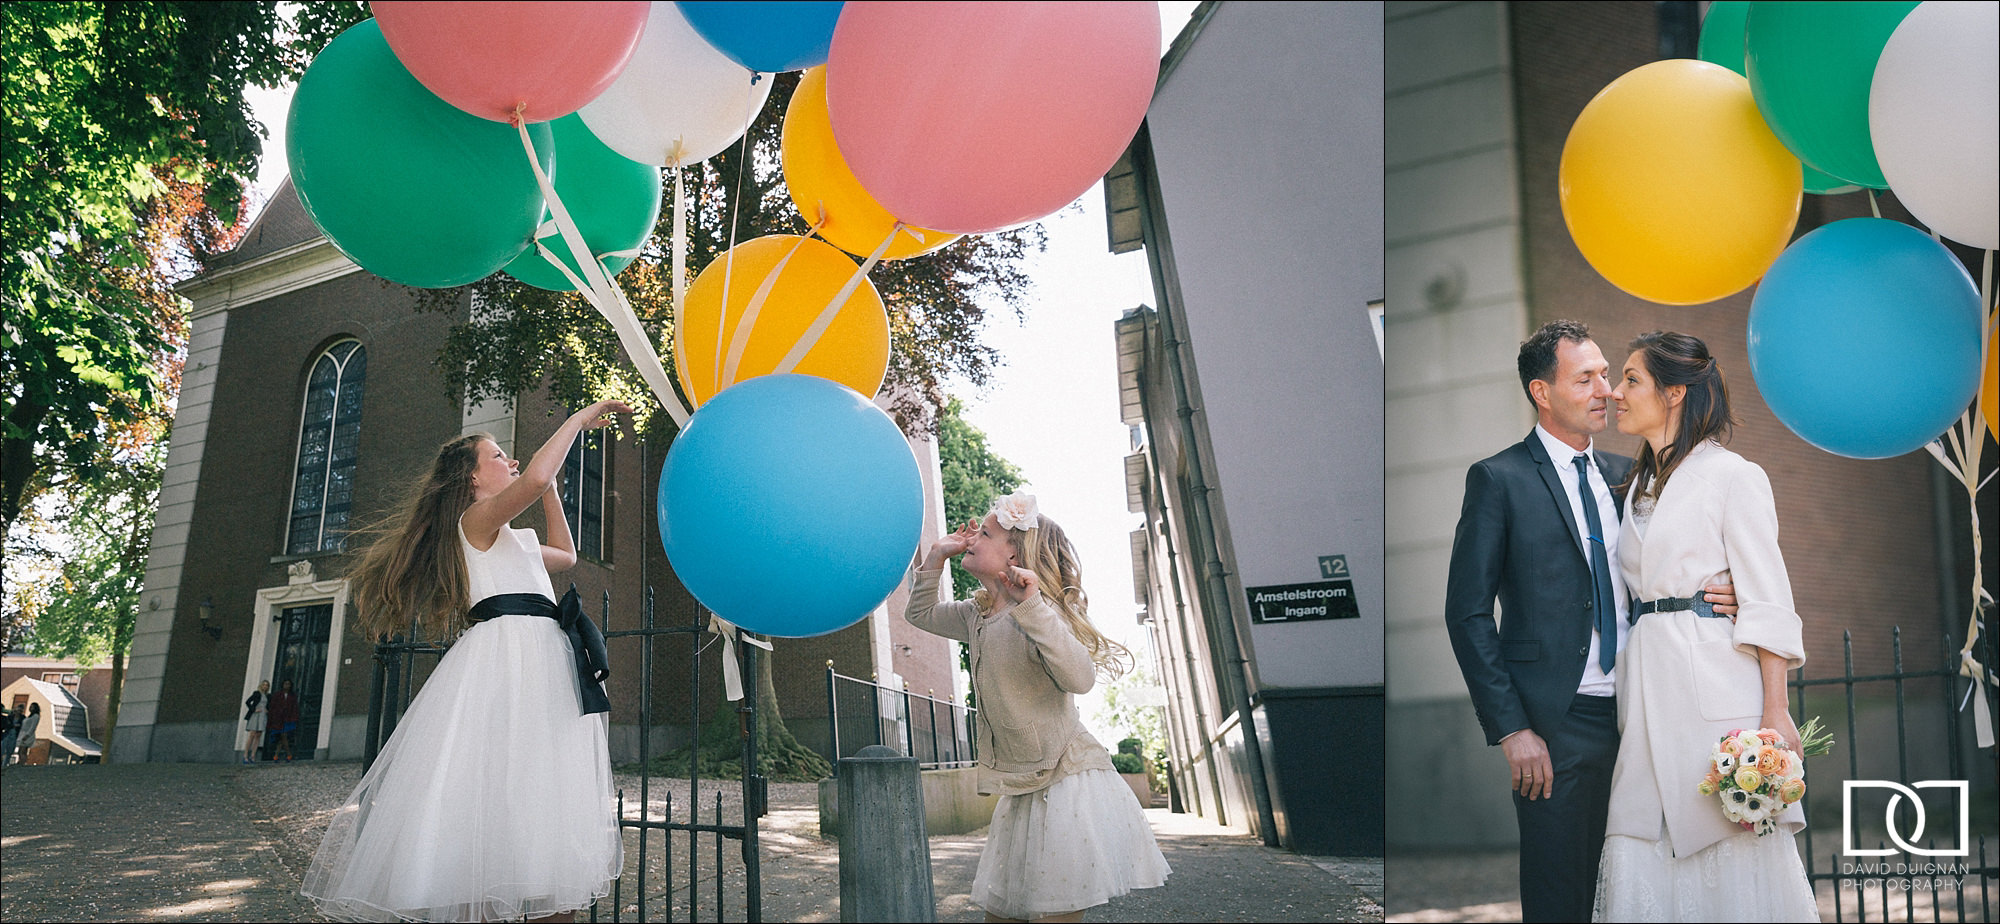 flower girl playing with balloons at wedding